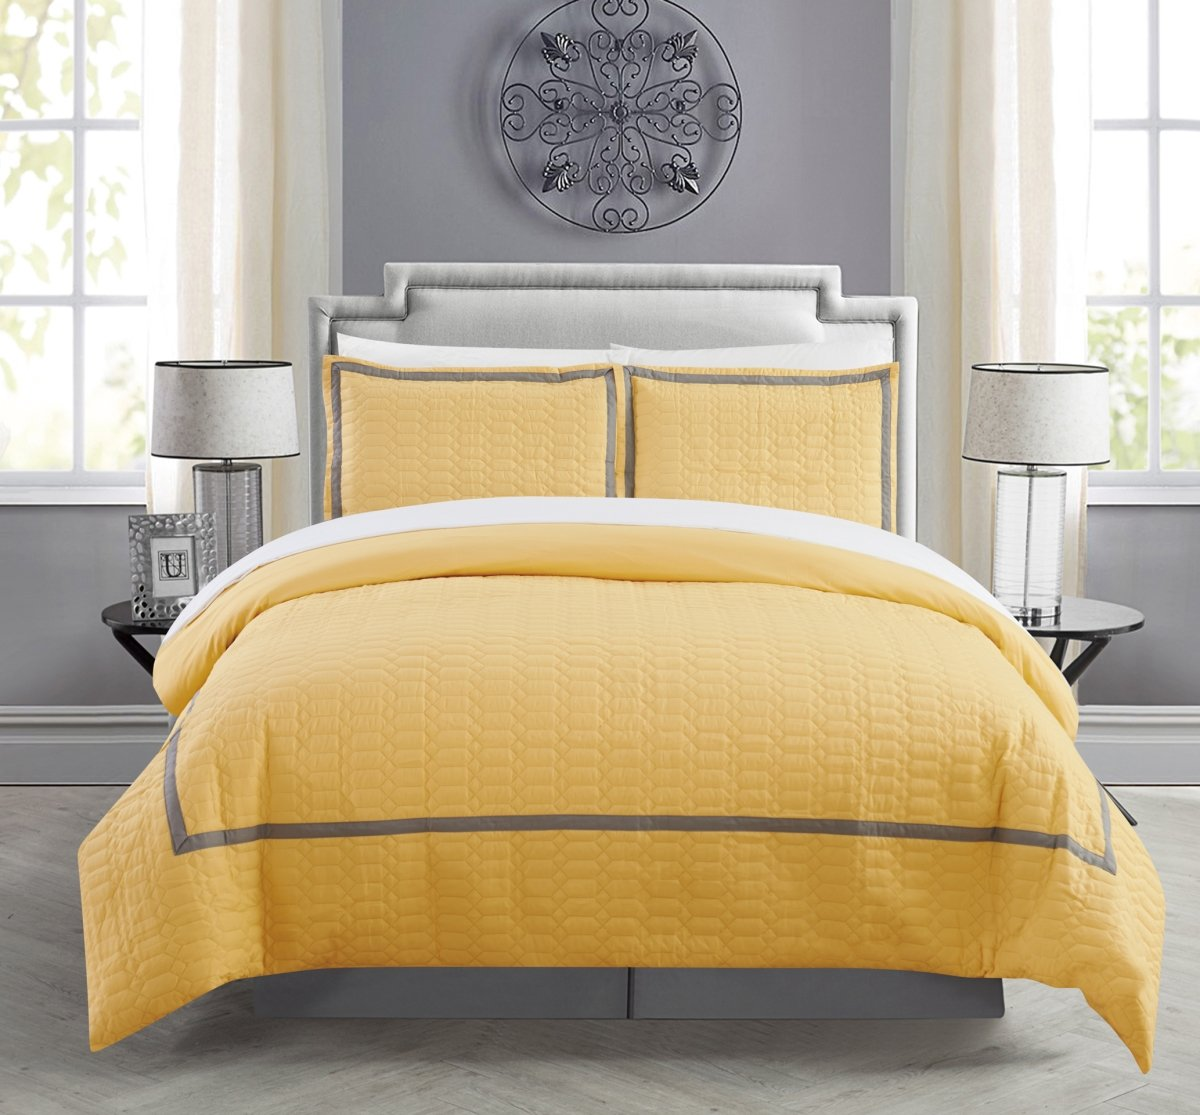 Chic Home Cleofe 3 Piece Duvet Cover Set Hotel Collection Two Tone Banded Print Zipper Closure Bedding - Decorative Pillow Shams Included, Queen Yellow